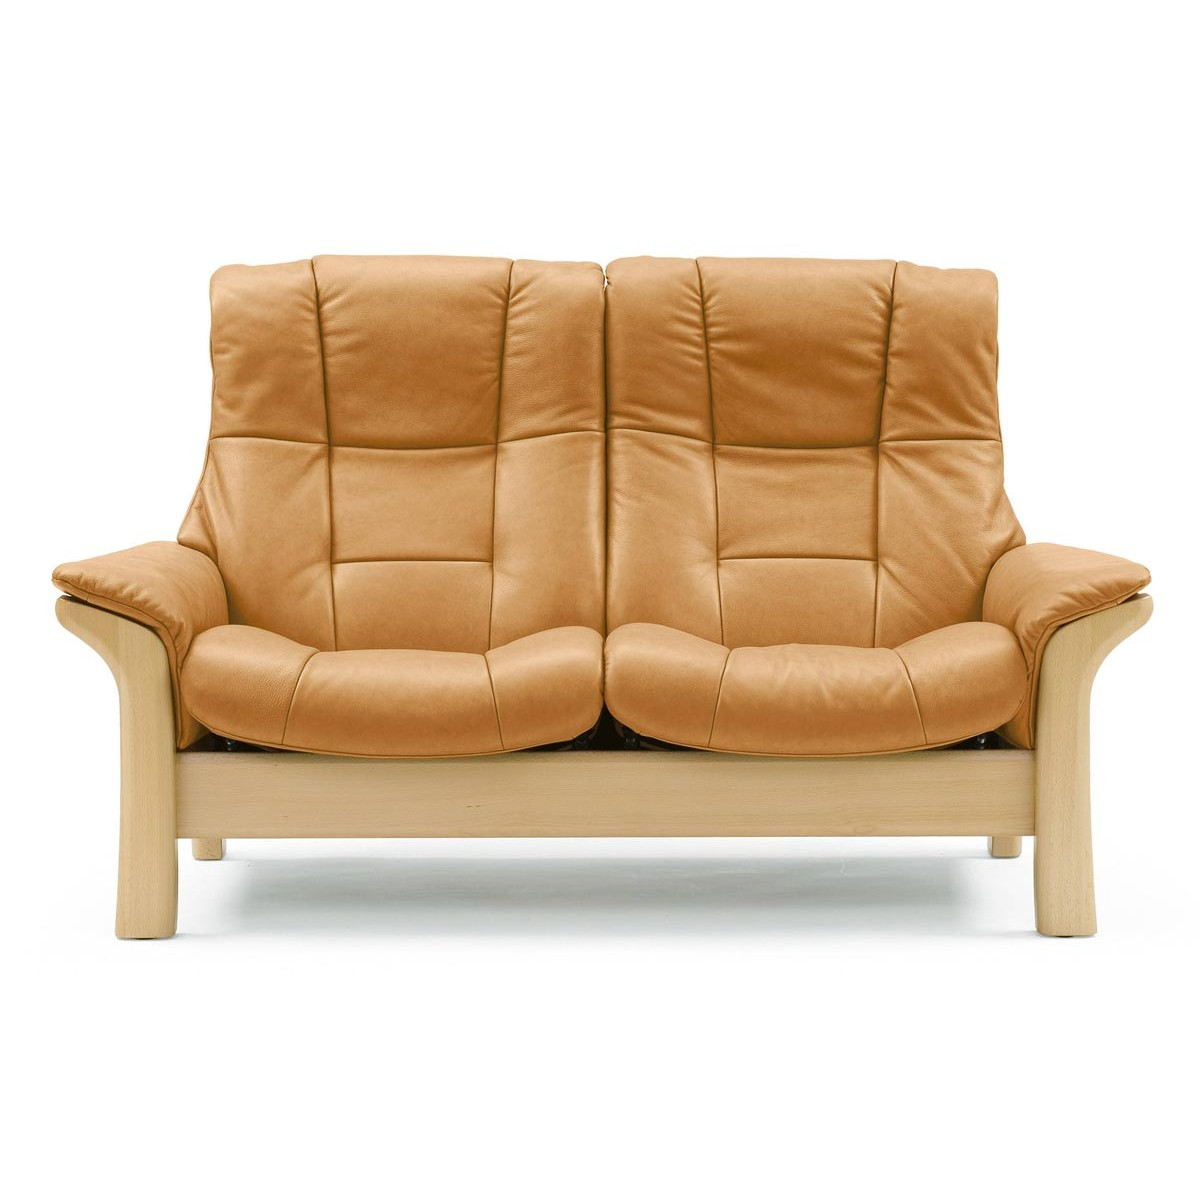 high the sofa back loveseat company contract chair brigitte